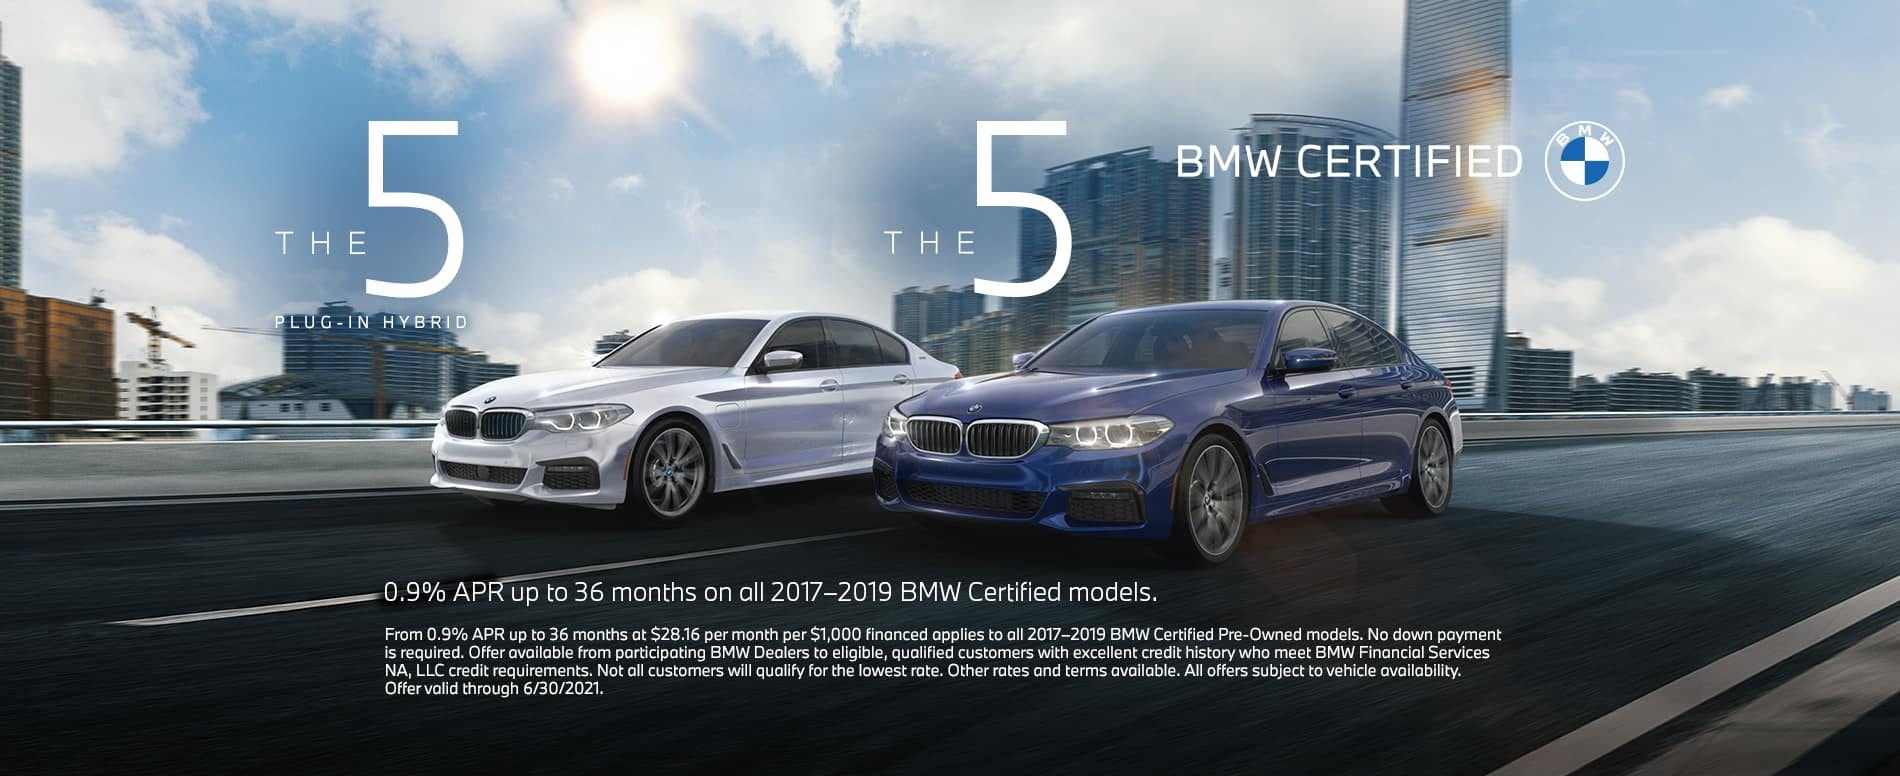 PUSH_BMW_Certified-May-June-FMA-1900×776